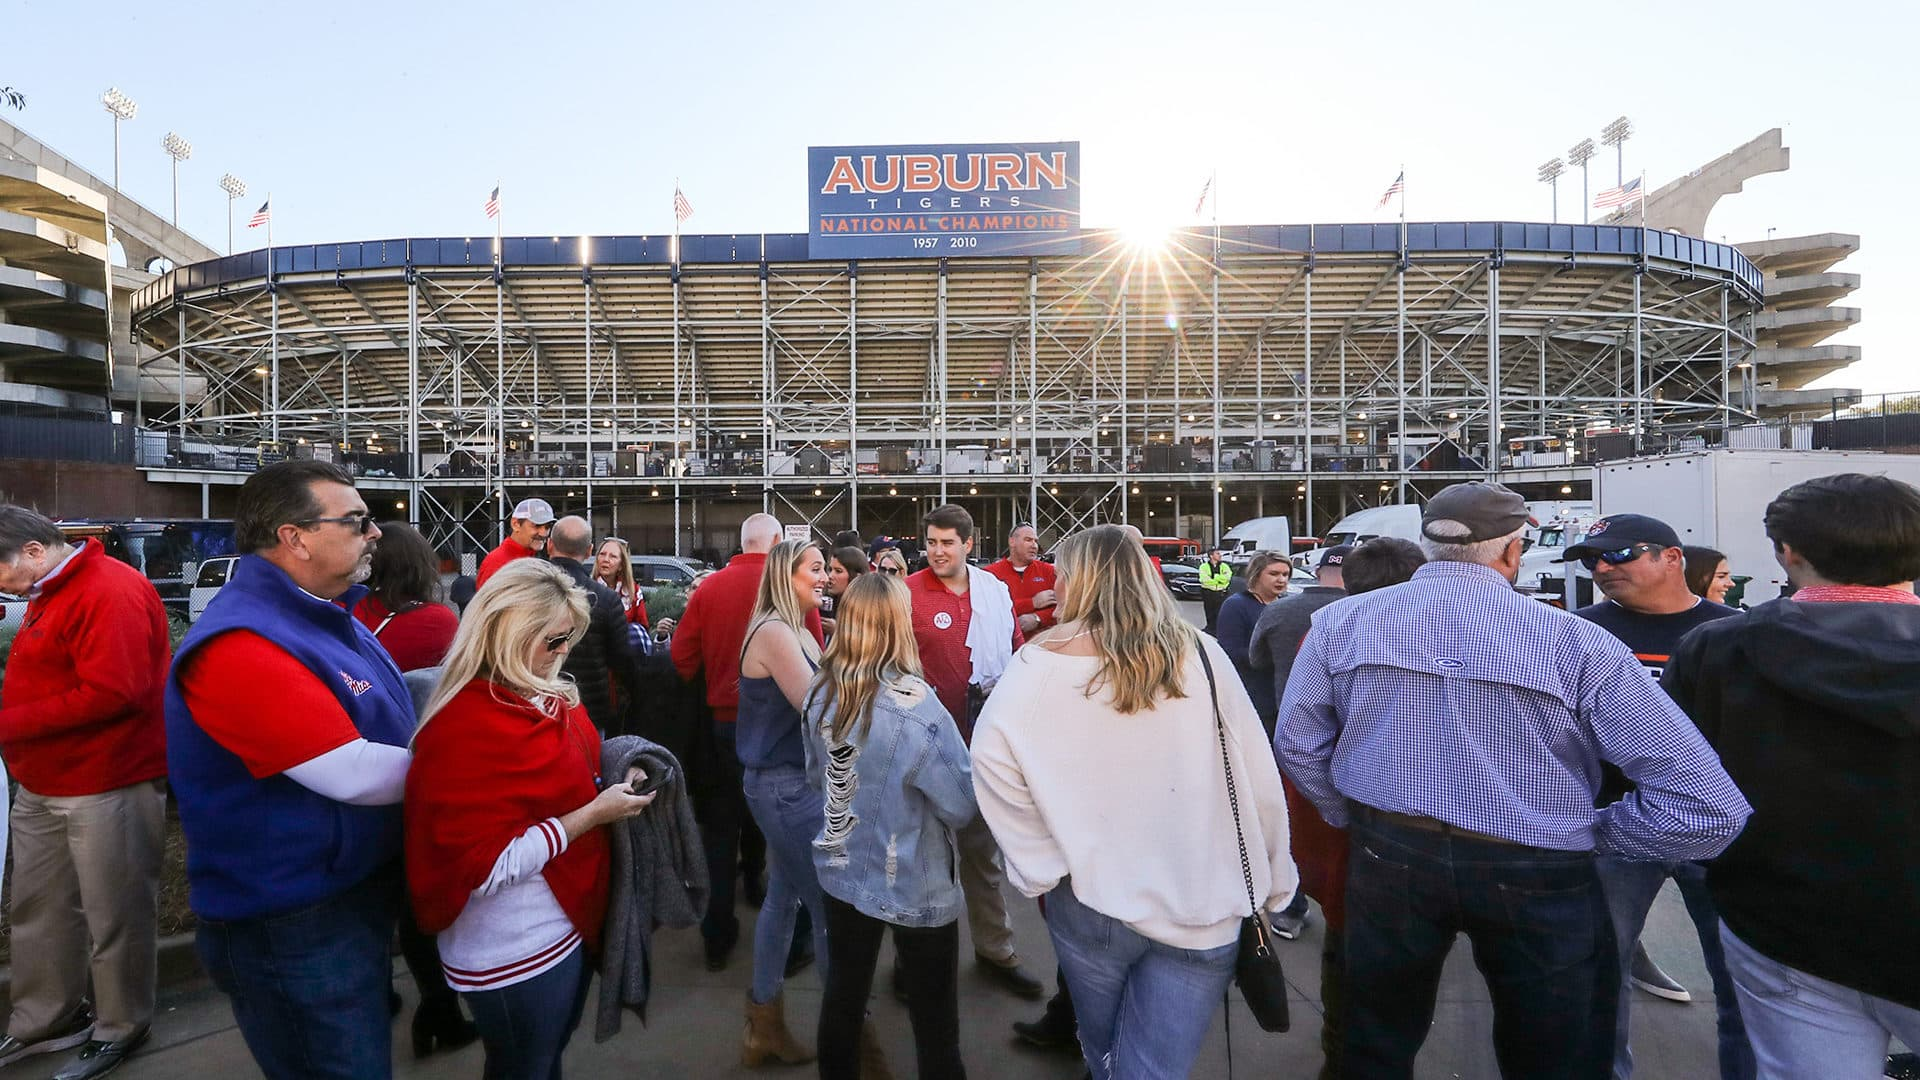 The Season: Ole Miss Football – Auburn (2019)